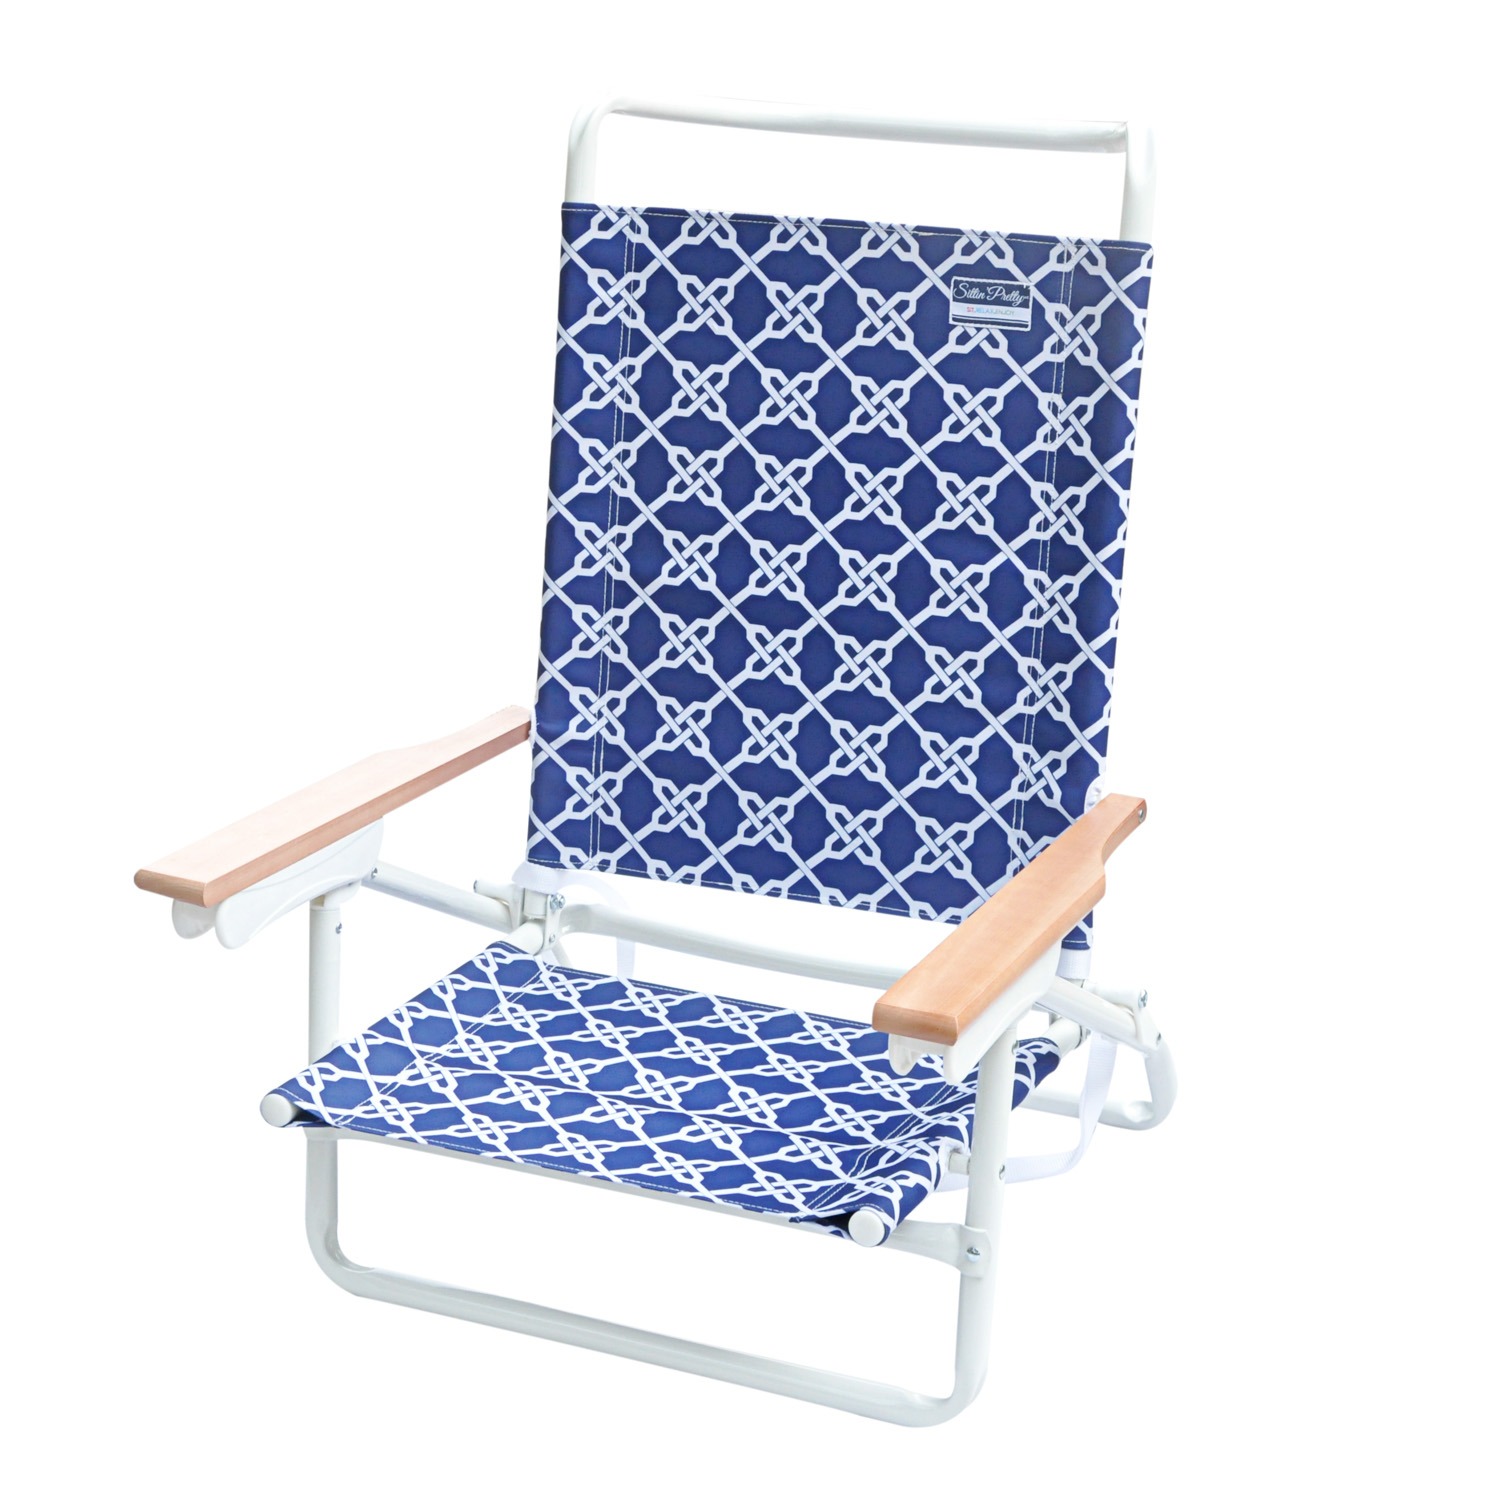 Super Nautical Knots C Beach Chair Onthecornerstone Fun Painted Chair Ideas Images Onthecornerstoneorg